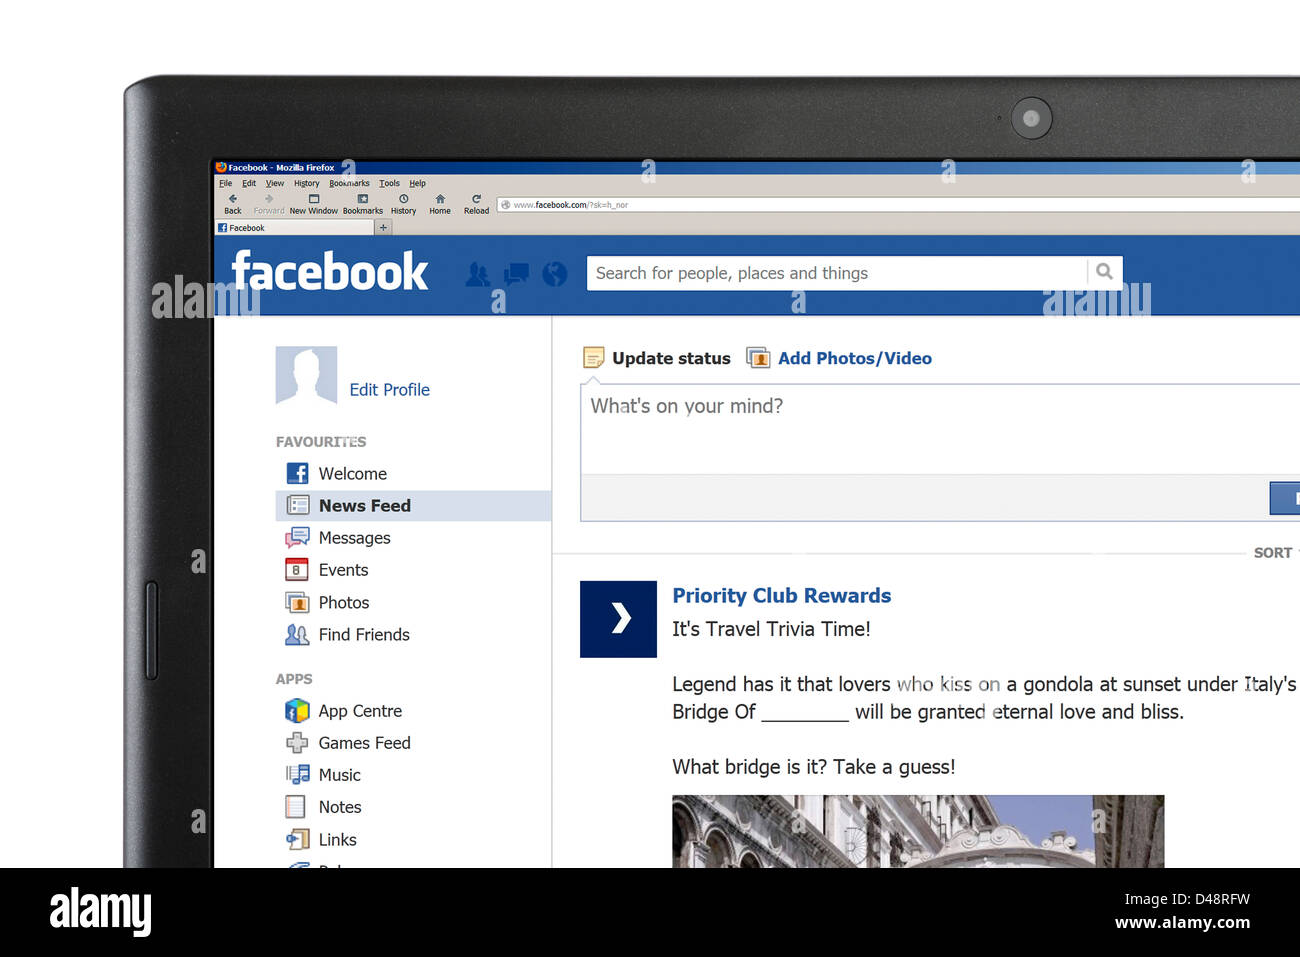 The Facebook News Feed page on a laptop computer - Stock Image